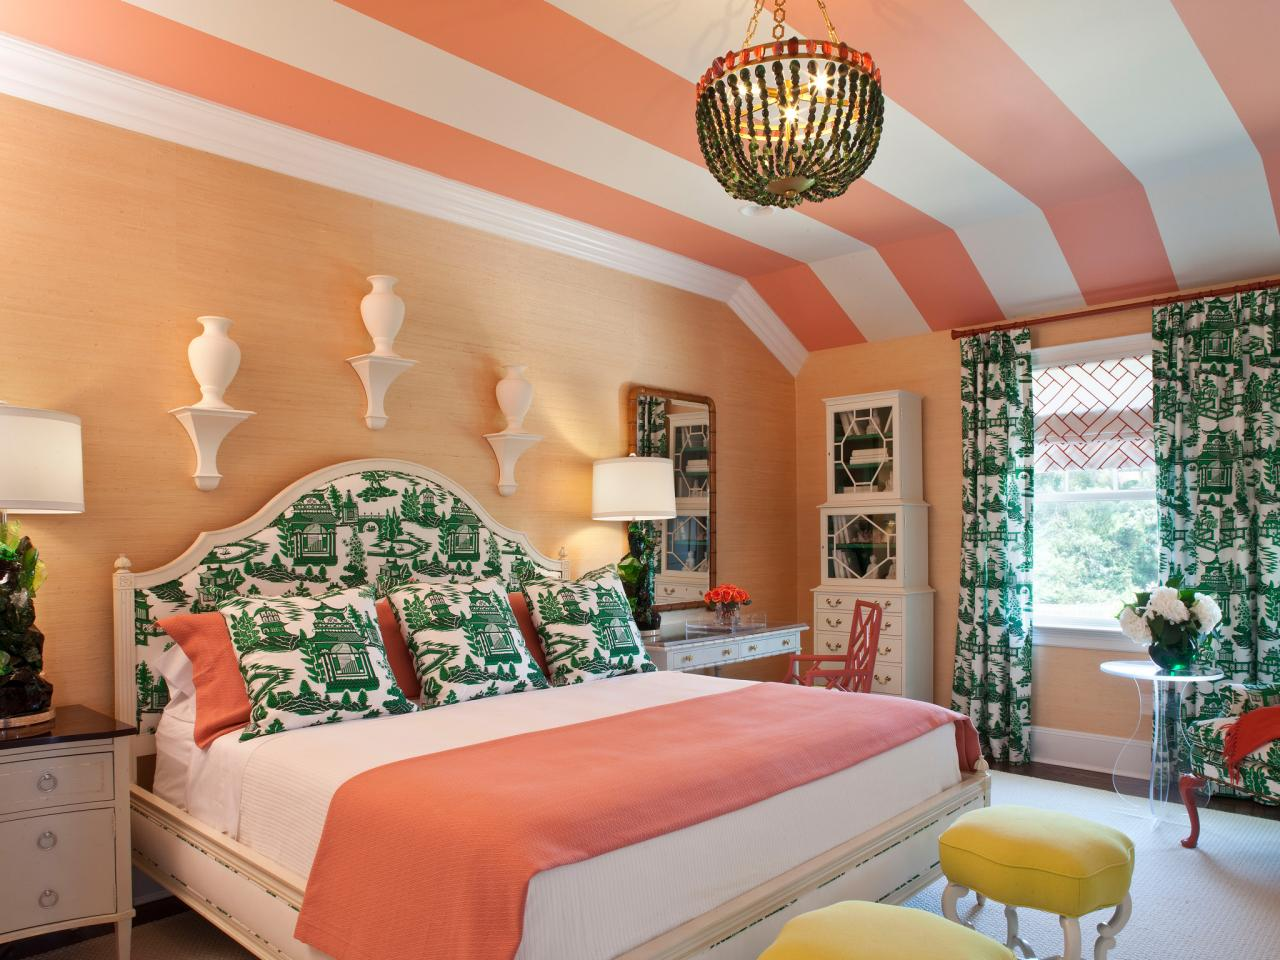 Bedroom Color Schemes: Pictures, Options & Ideas  HGTV